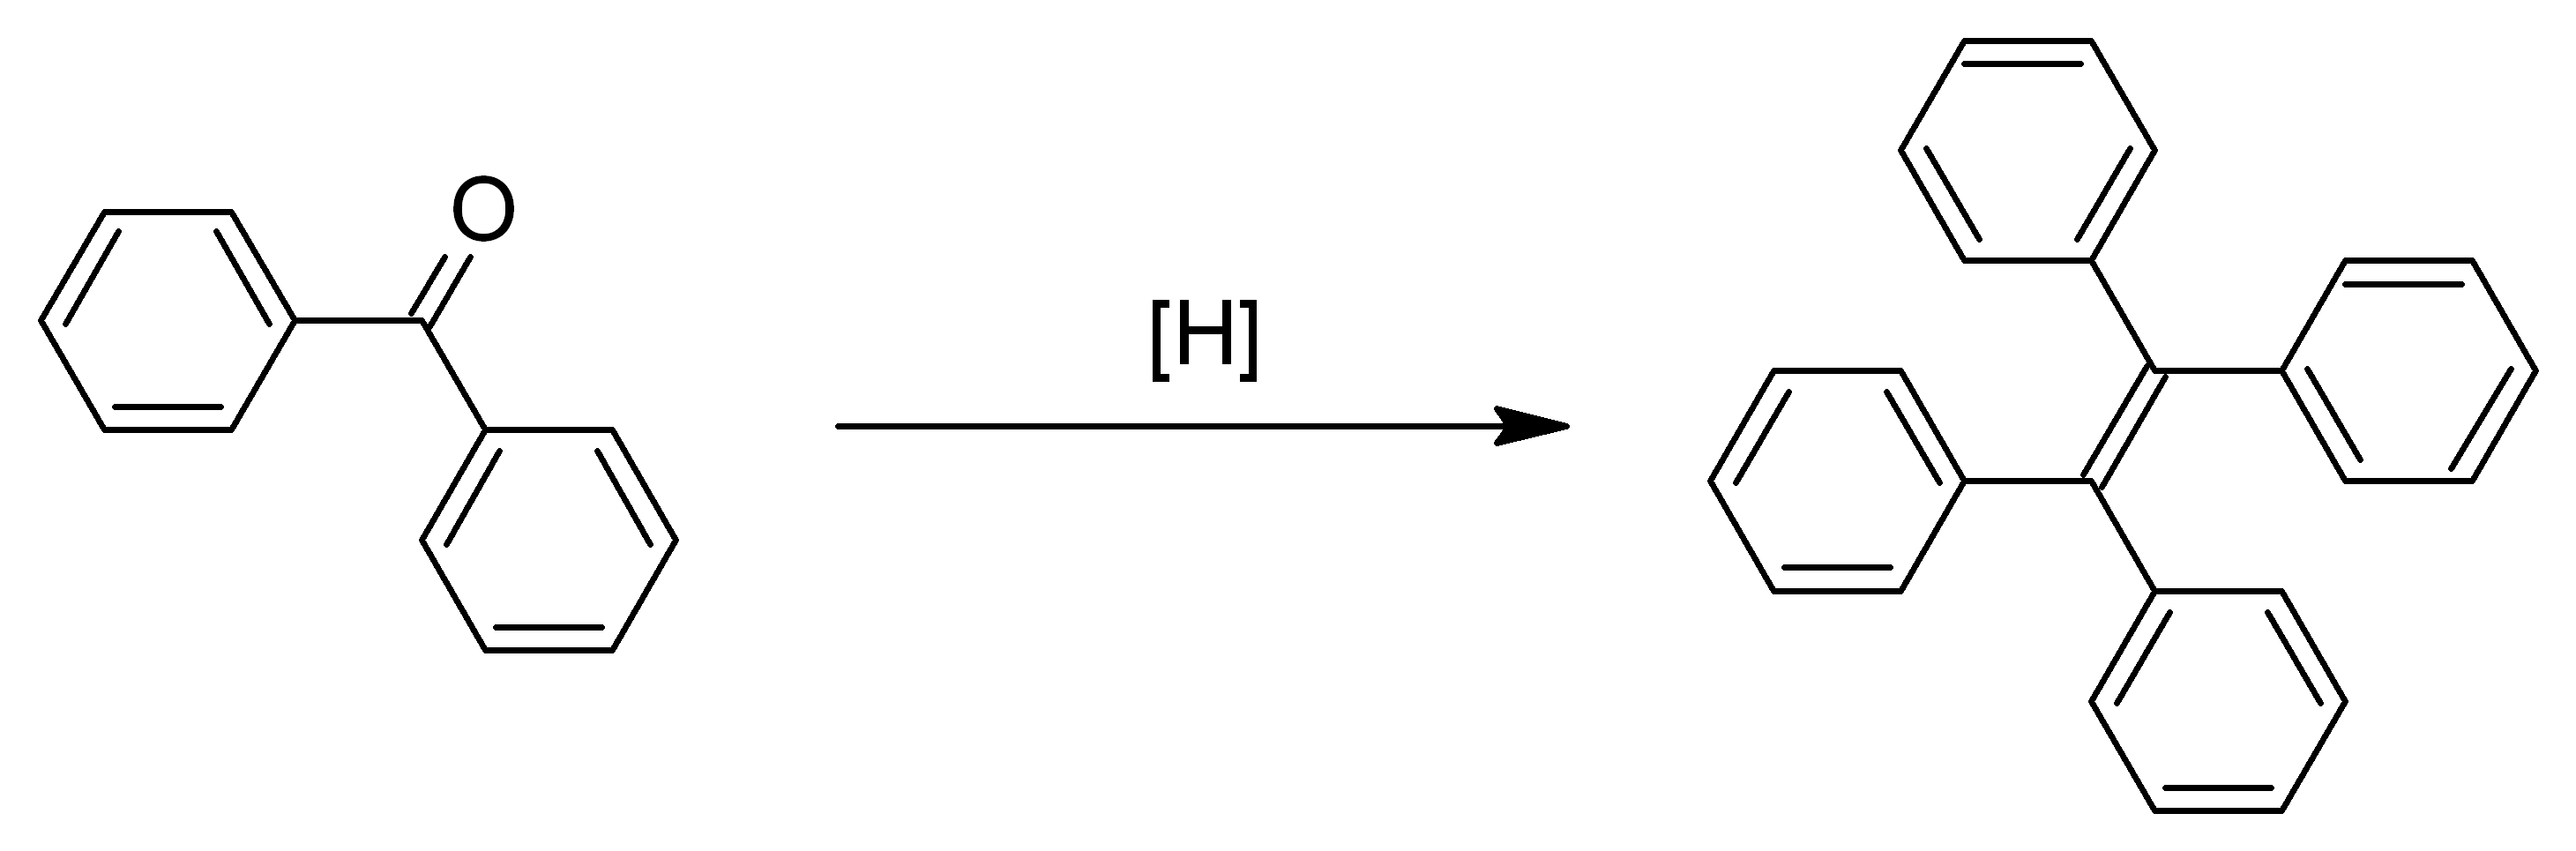 Bromine Reaction This Reaction The Bromine